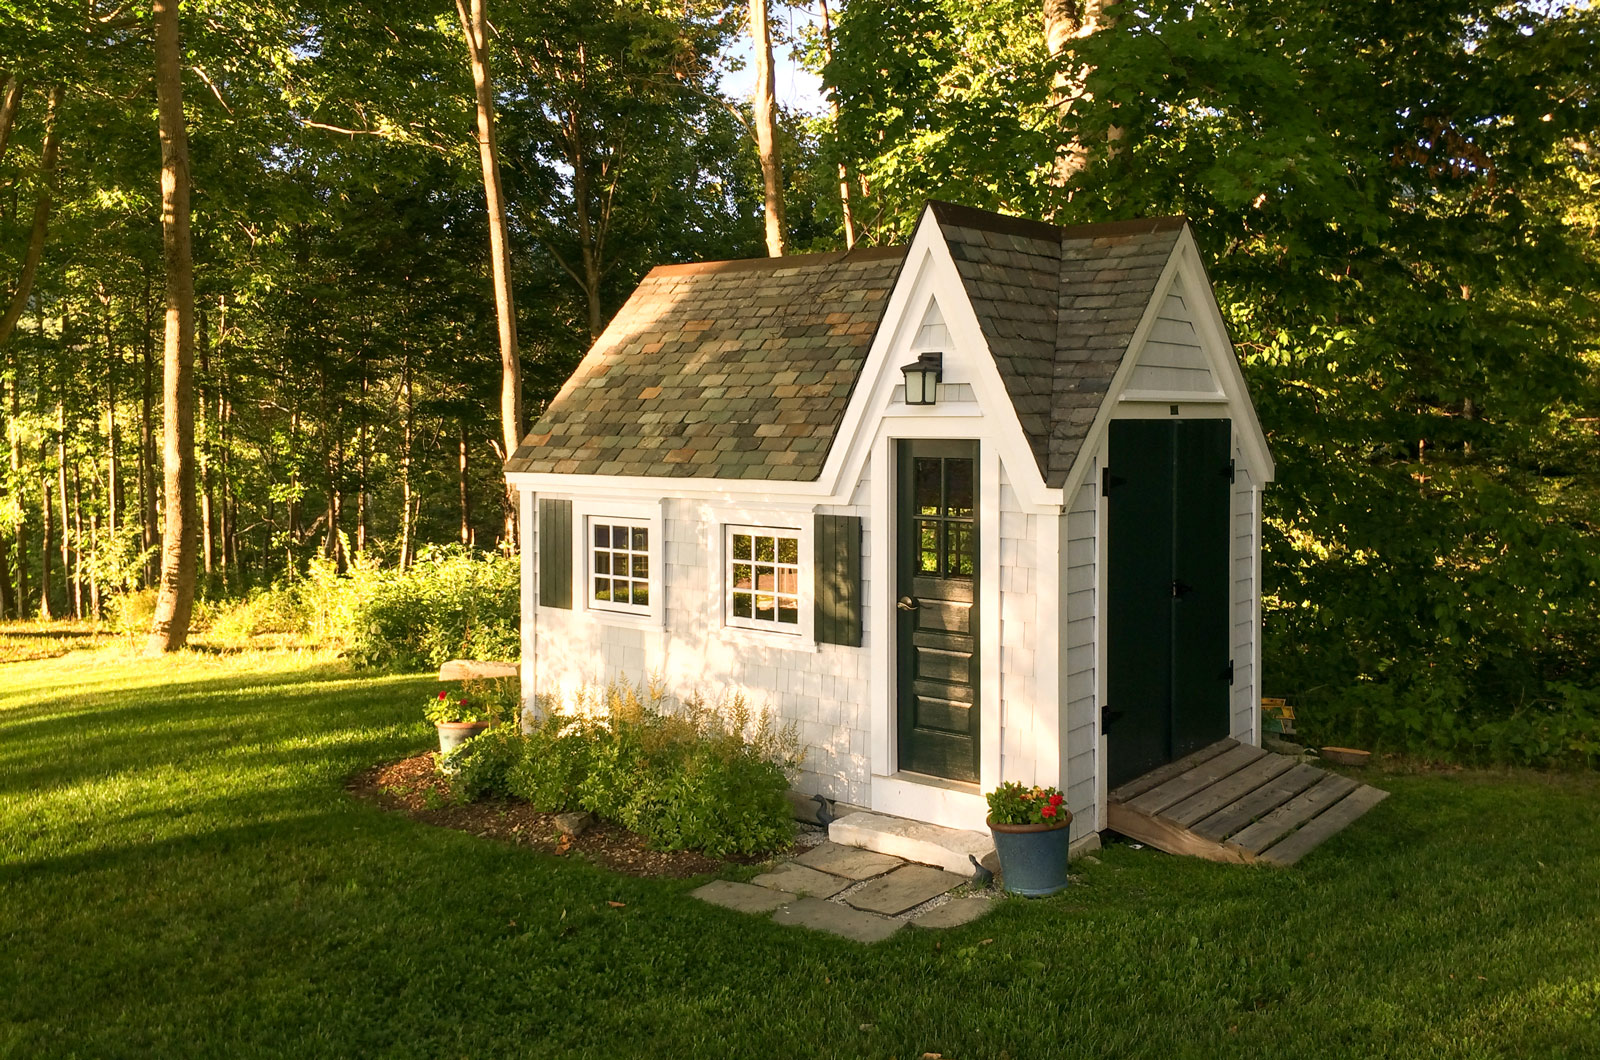 How to build a tiny house for cheap tiny houses for Small modern homes for sale